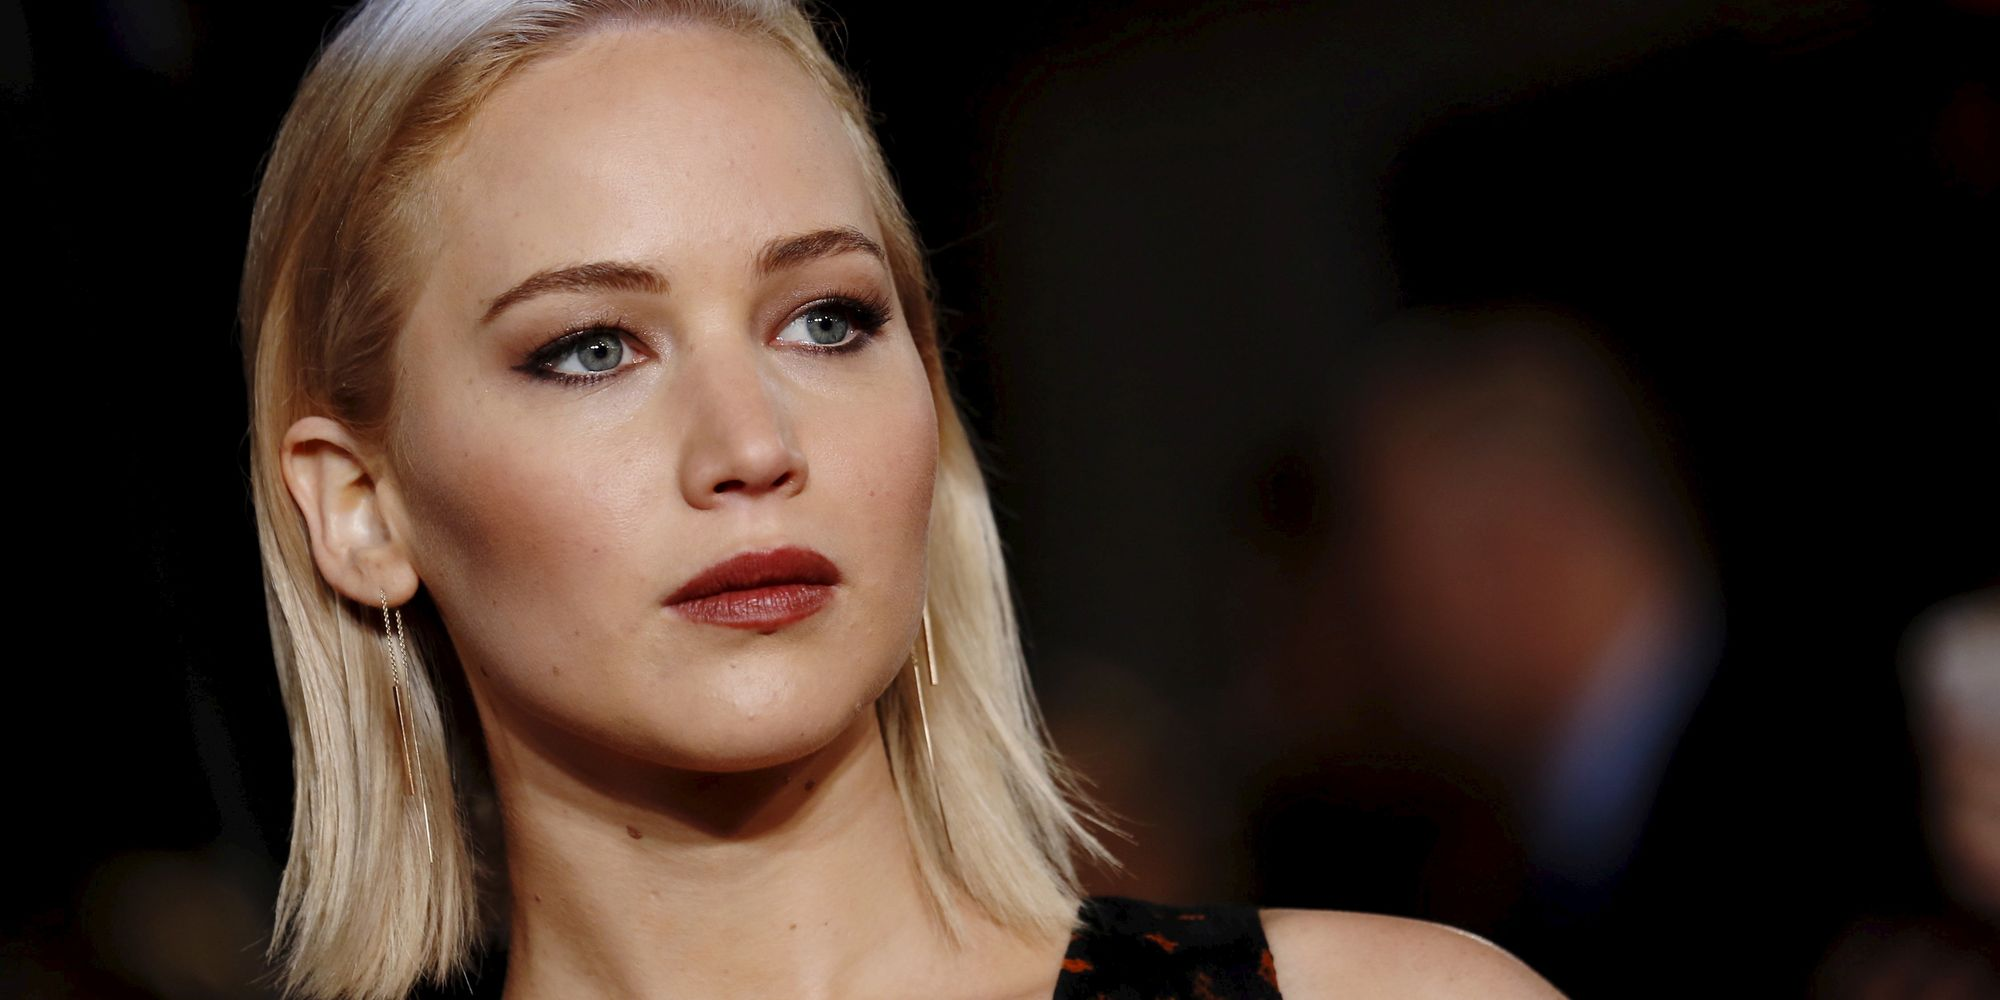 Jennifer Lawrence Has Just 2 Words To Say To Donald Trump